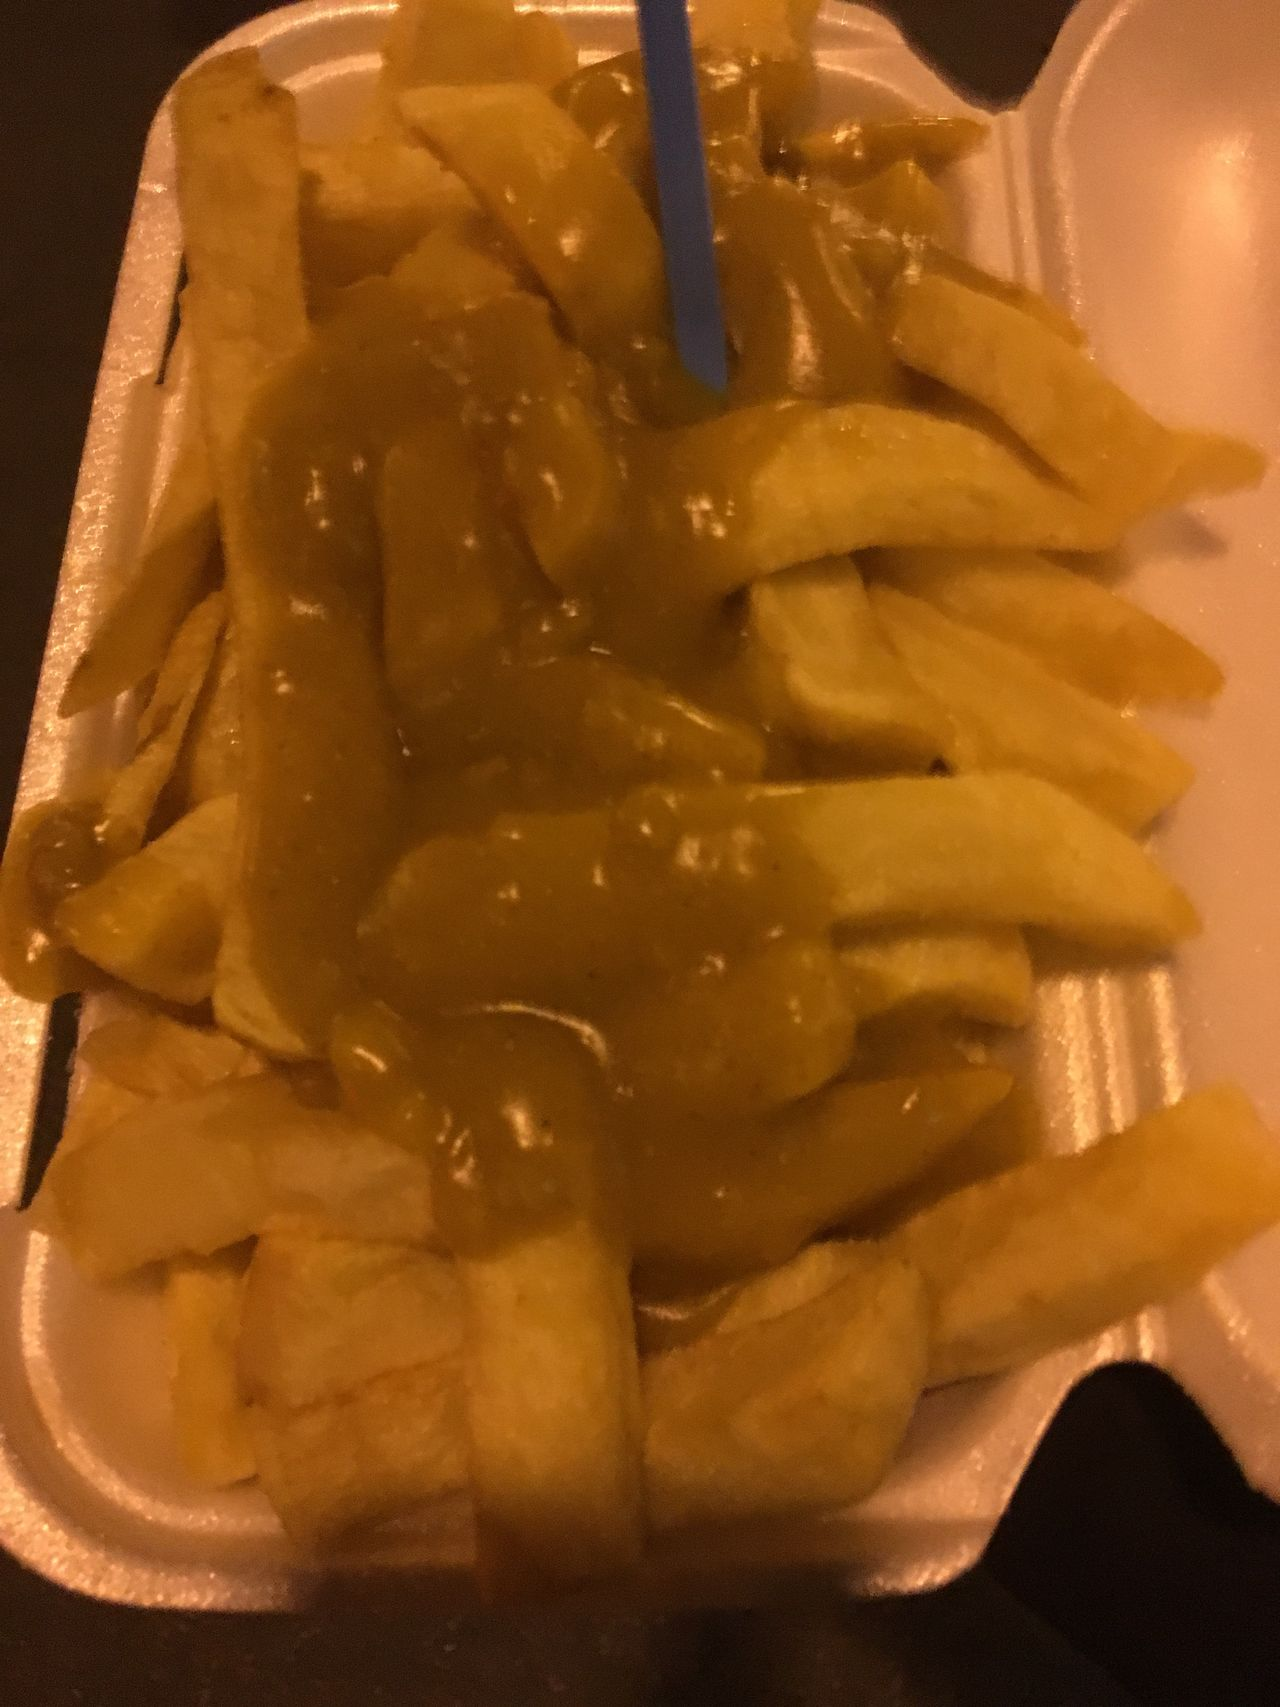 Chips & curry sauce Take Away Food Take Away Chips Curry Sauce Chips And Curry Sauce Chips & Curry Sauce British Take Away Chip Shop Food Chip Shop English Classic